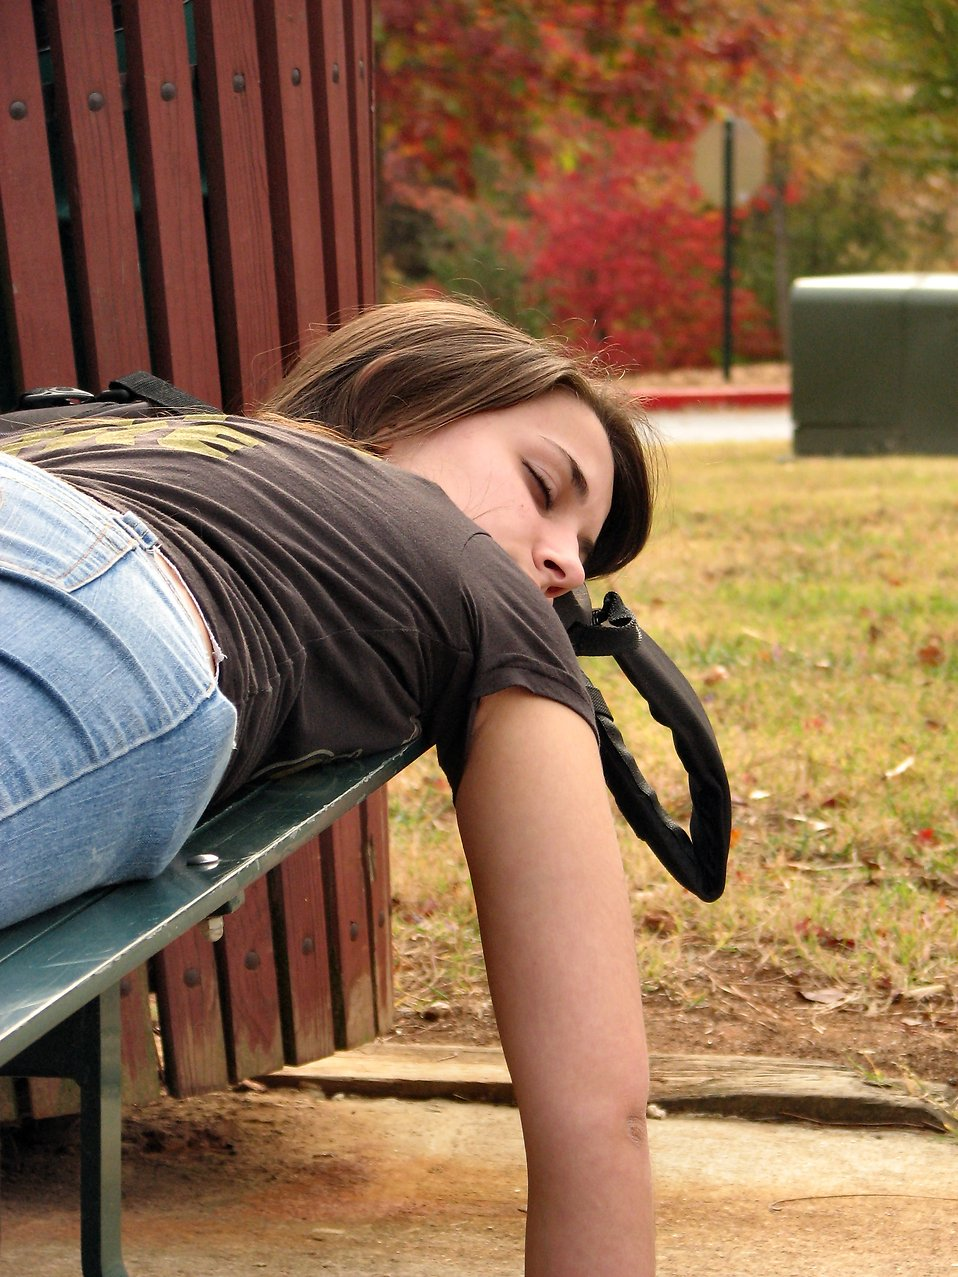 A teen girl sleeping on a bench : Free Stock Photo